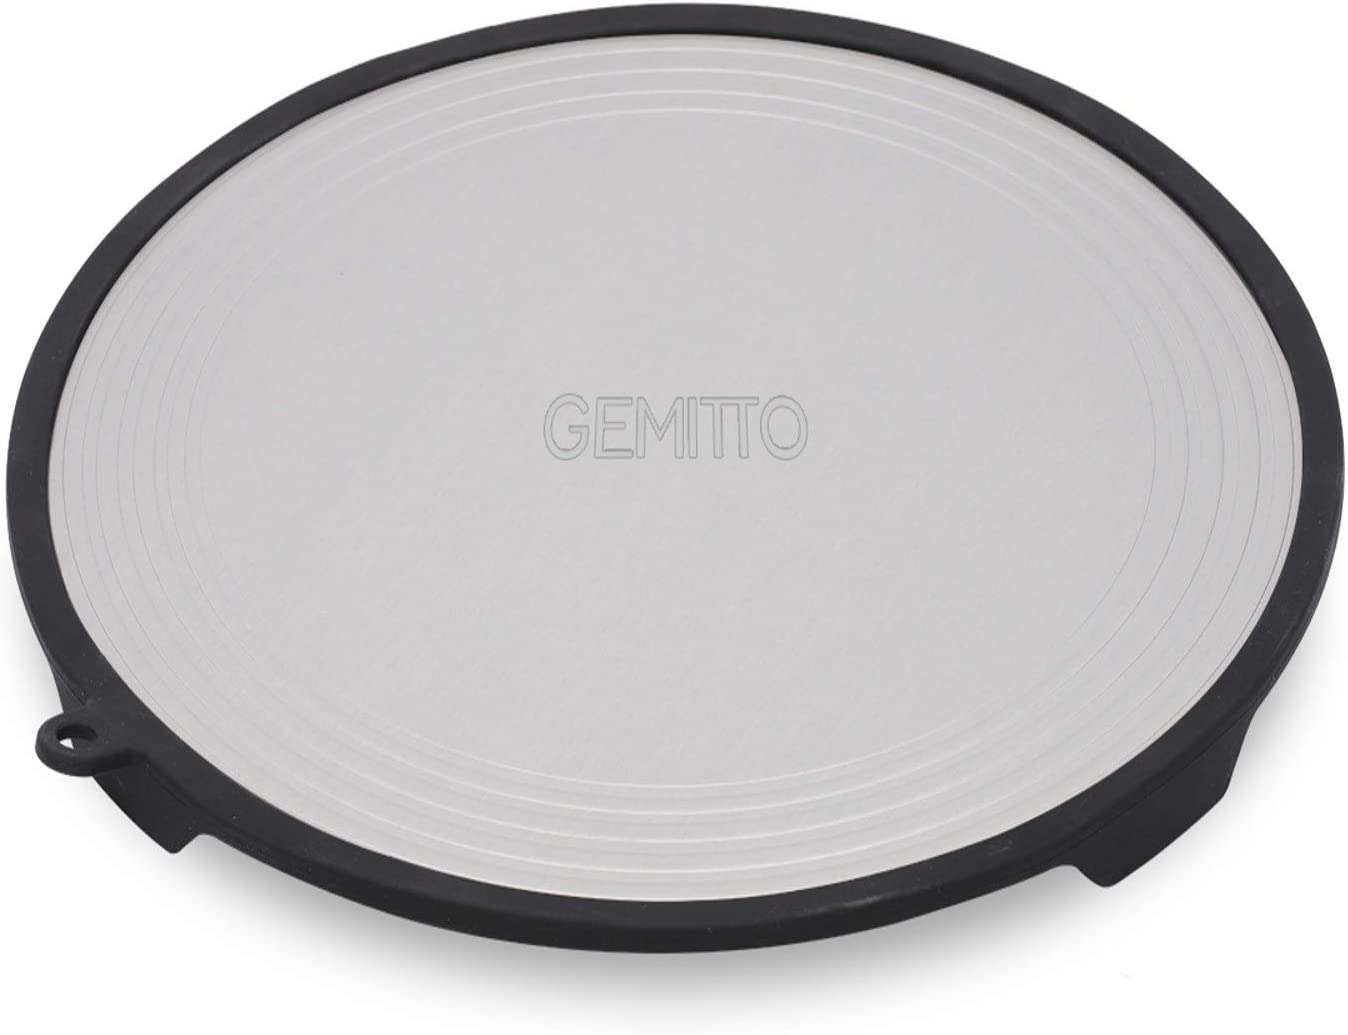 GEMITTO Round Fast Defrosting Tray, Multifunctional Aluminum Thawing Plate, Fast Heating for Stovetop, Ashes Protection for Pot, Quick Thawing for Frozen Meat (Silver, 11